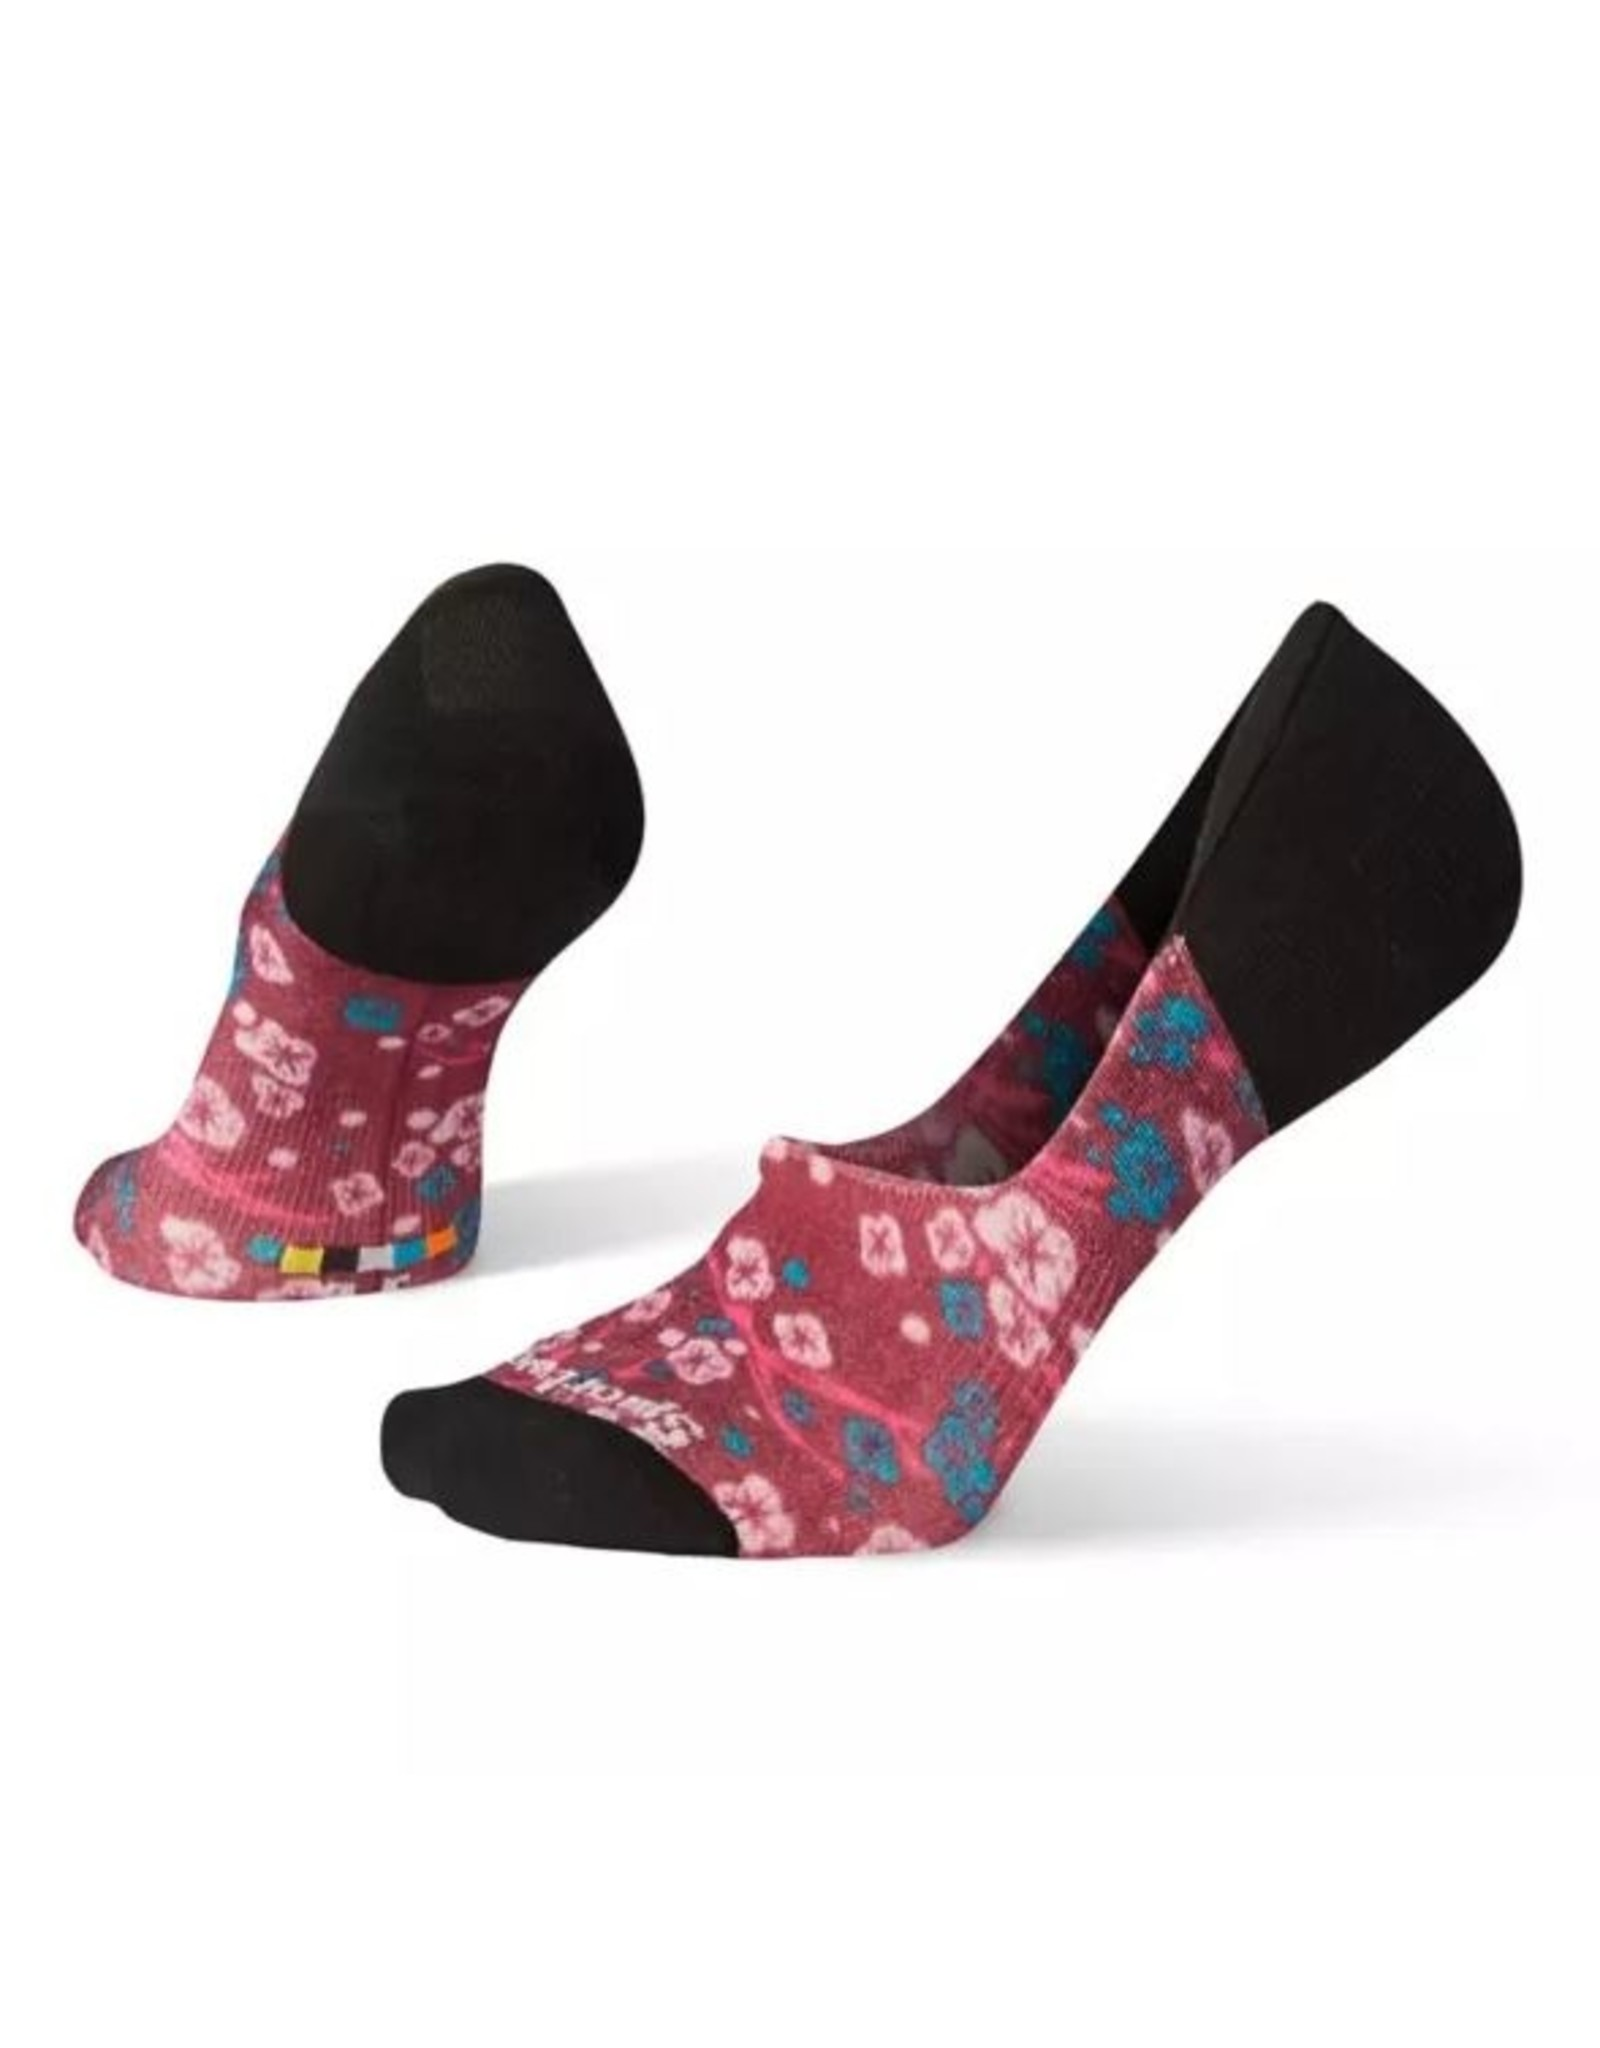 Smartwool Women's Curated Cherry Blossom   -91af